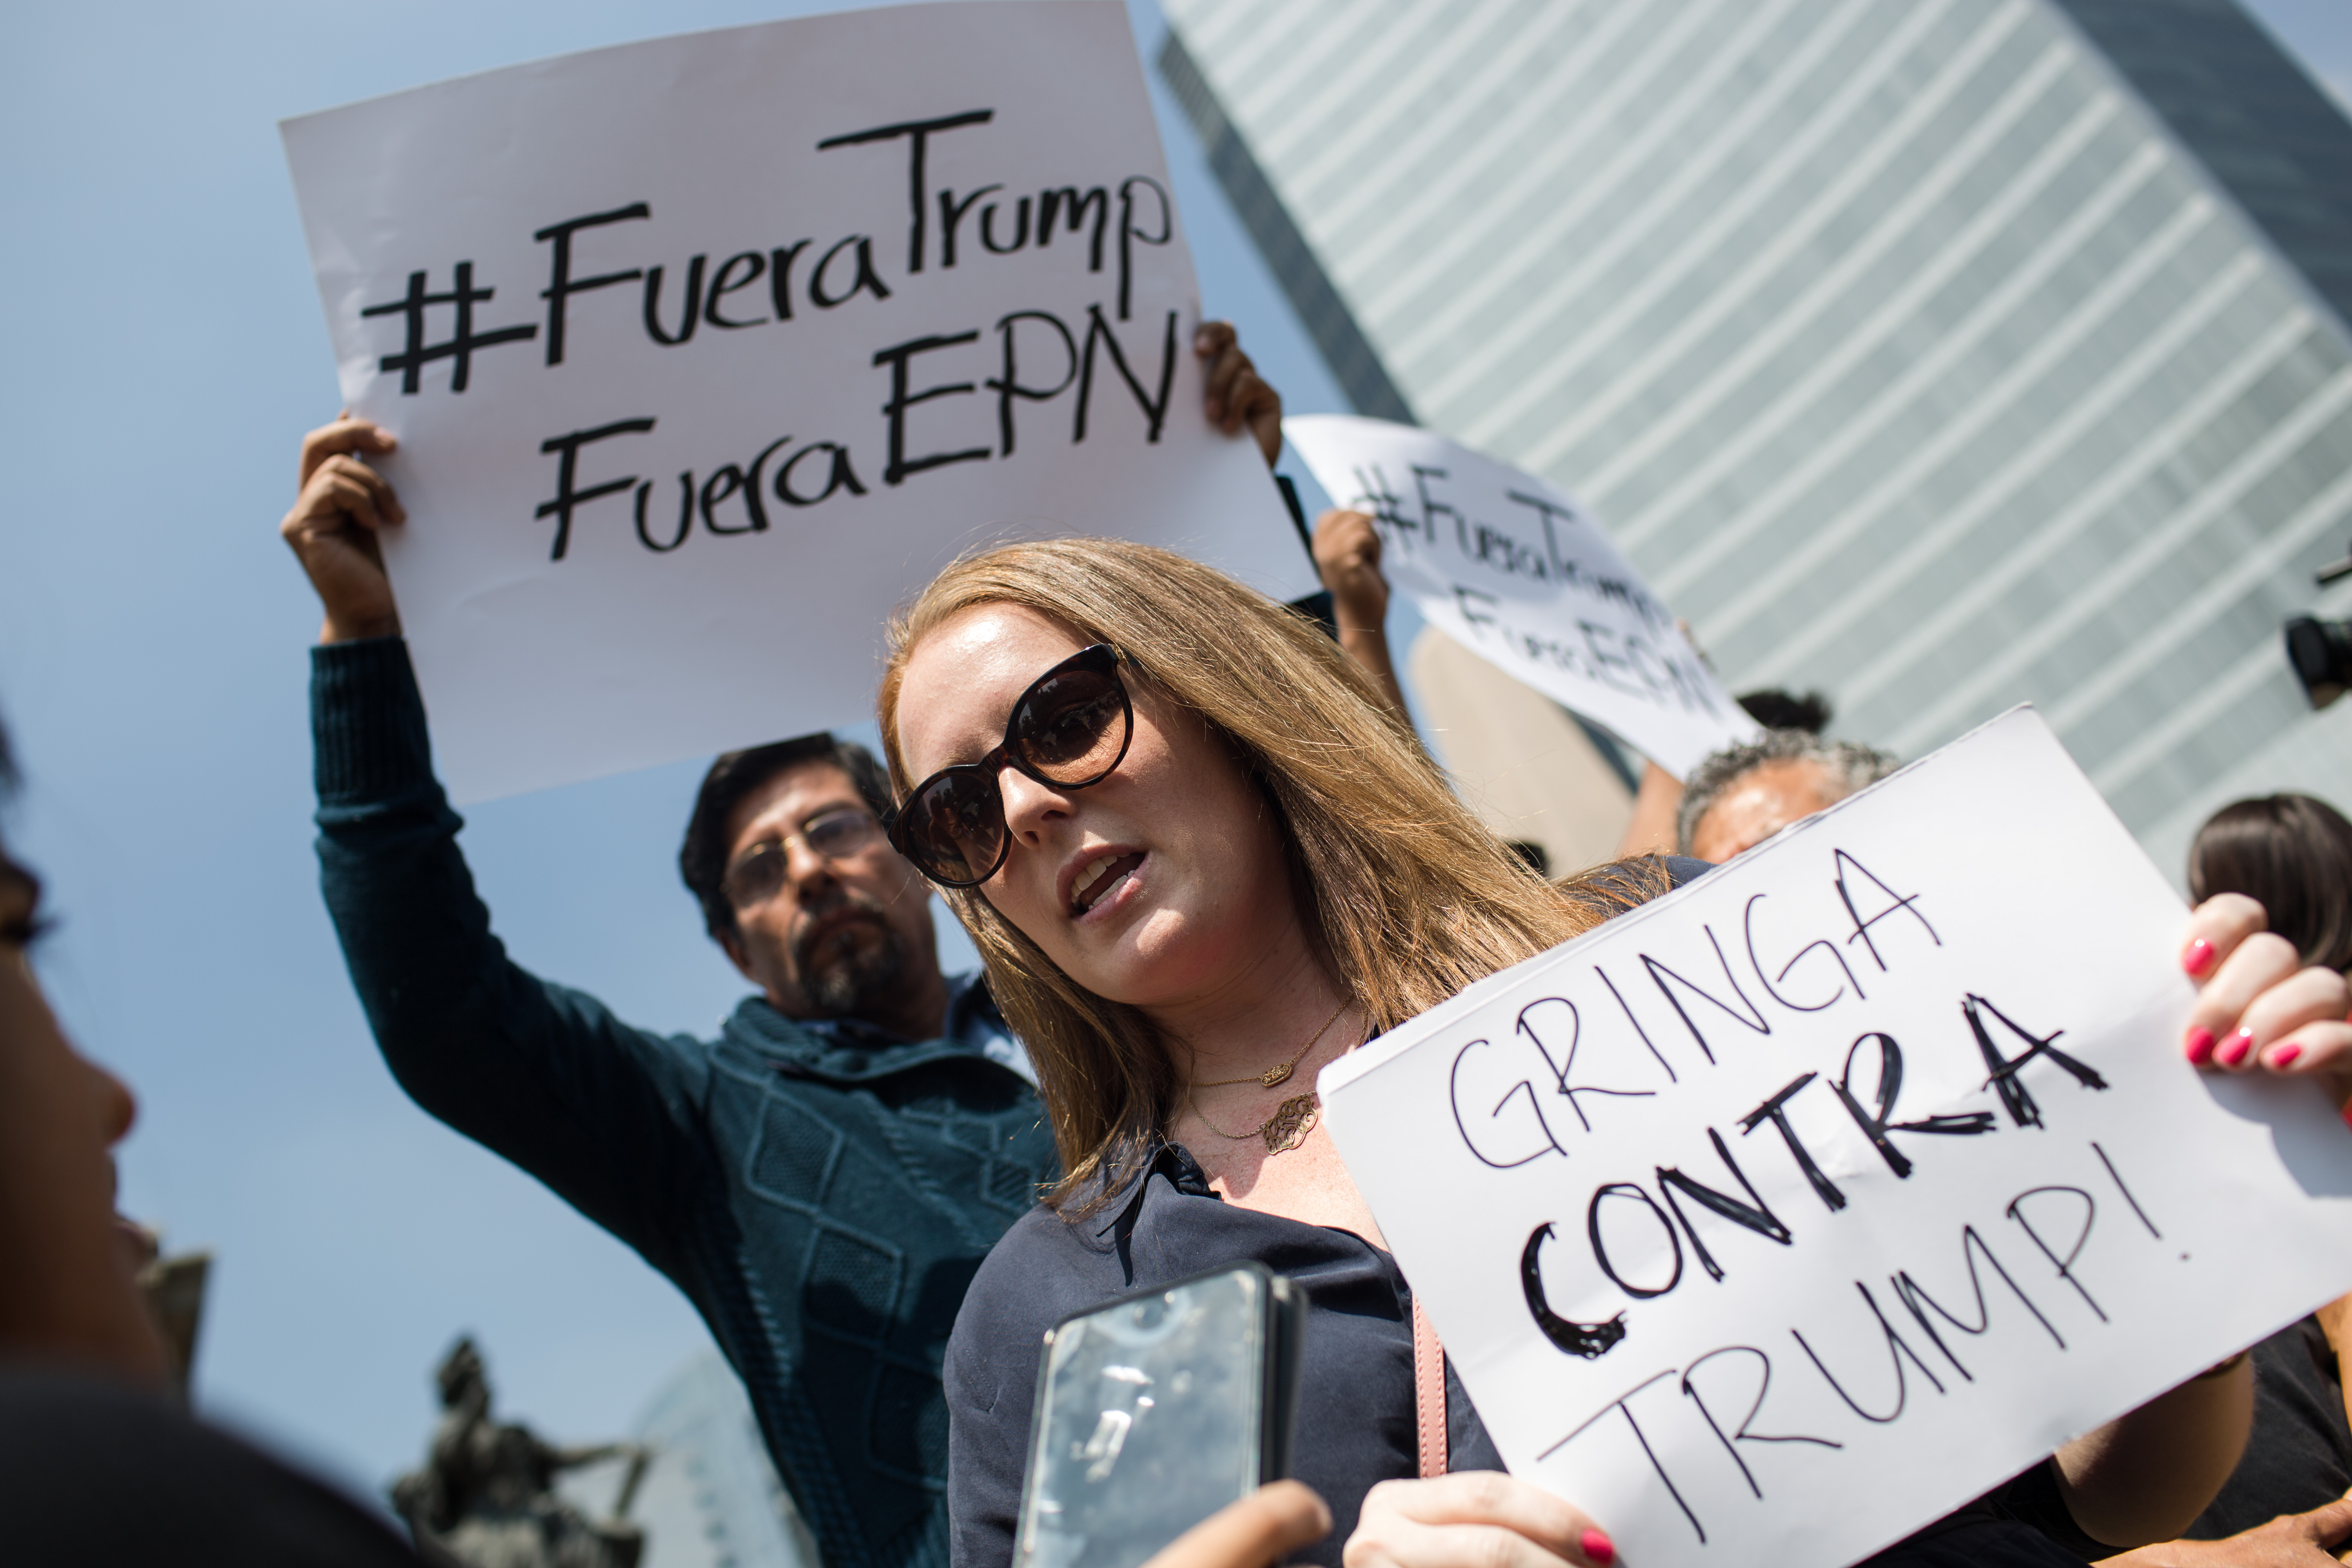 Demonstrators hold signs protesting the visit of Donald Trump, the 2016 U.S. Republican presidential nominee, to Mexico for a meeting with Mexican President Enrique Peña Nieto in Mexico City on Aug. 31, 2016